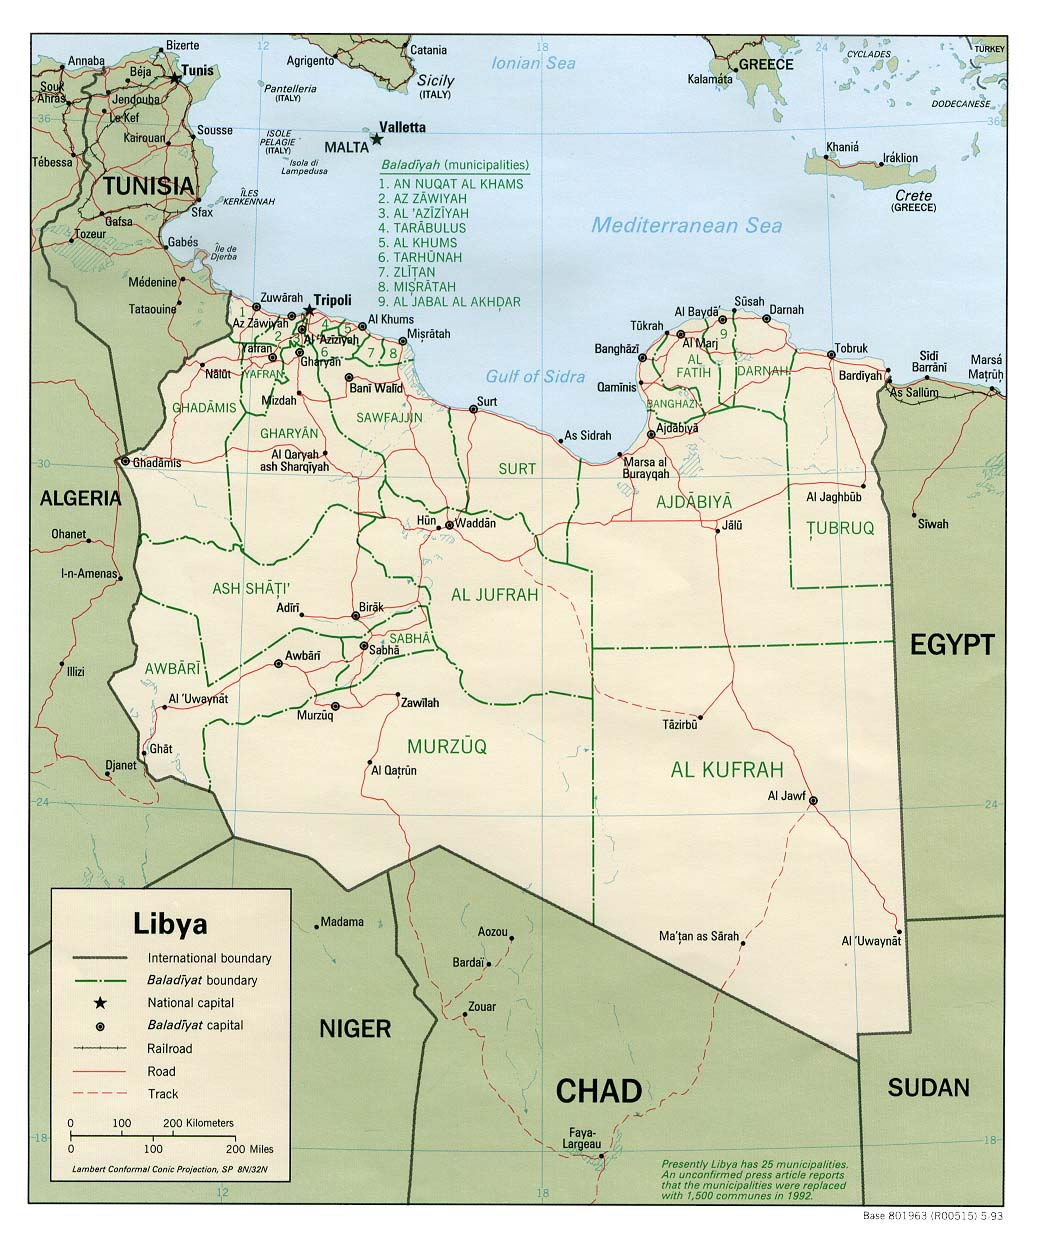 difference between libya and bahrain